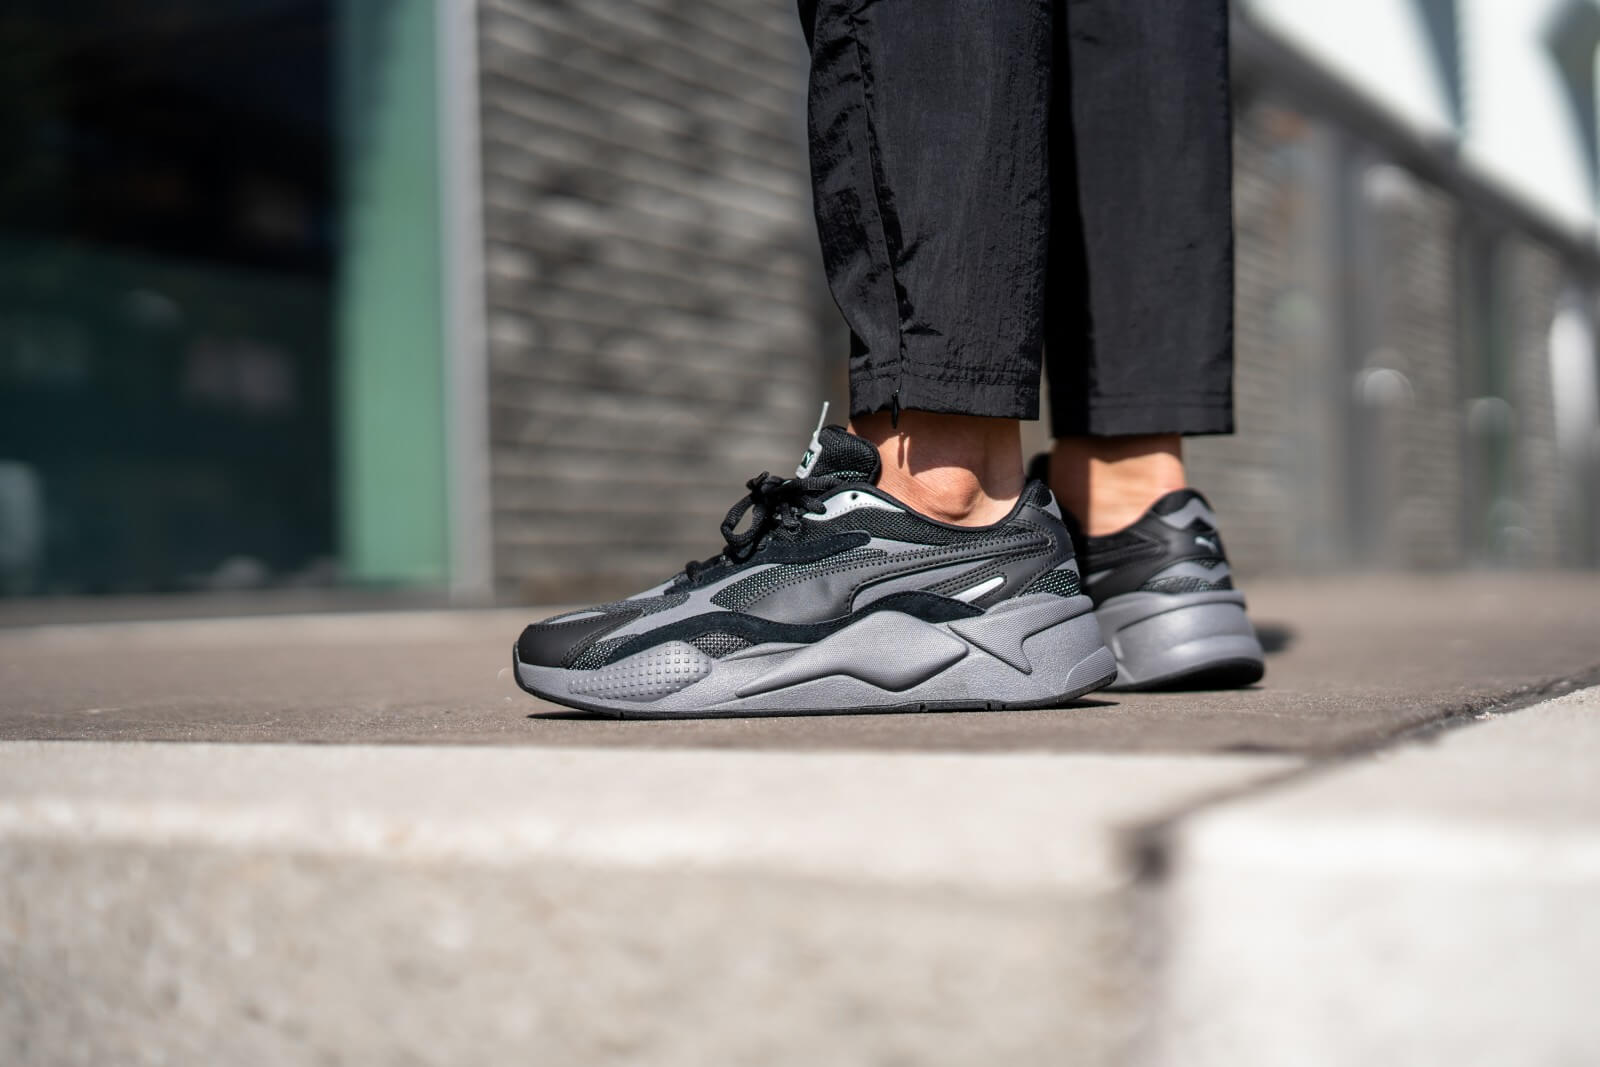 Puma RS-X3 Puzzle Puma Black/Castle Rock - 371570-02